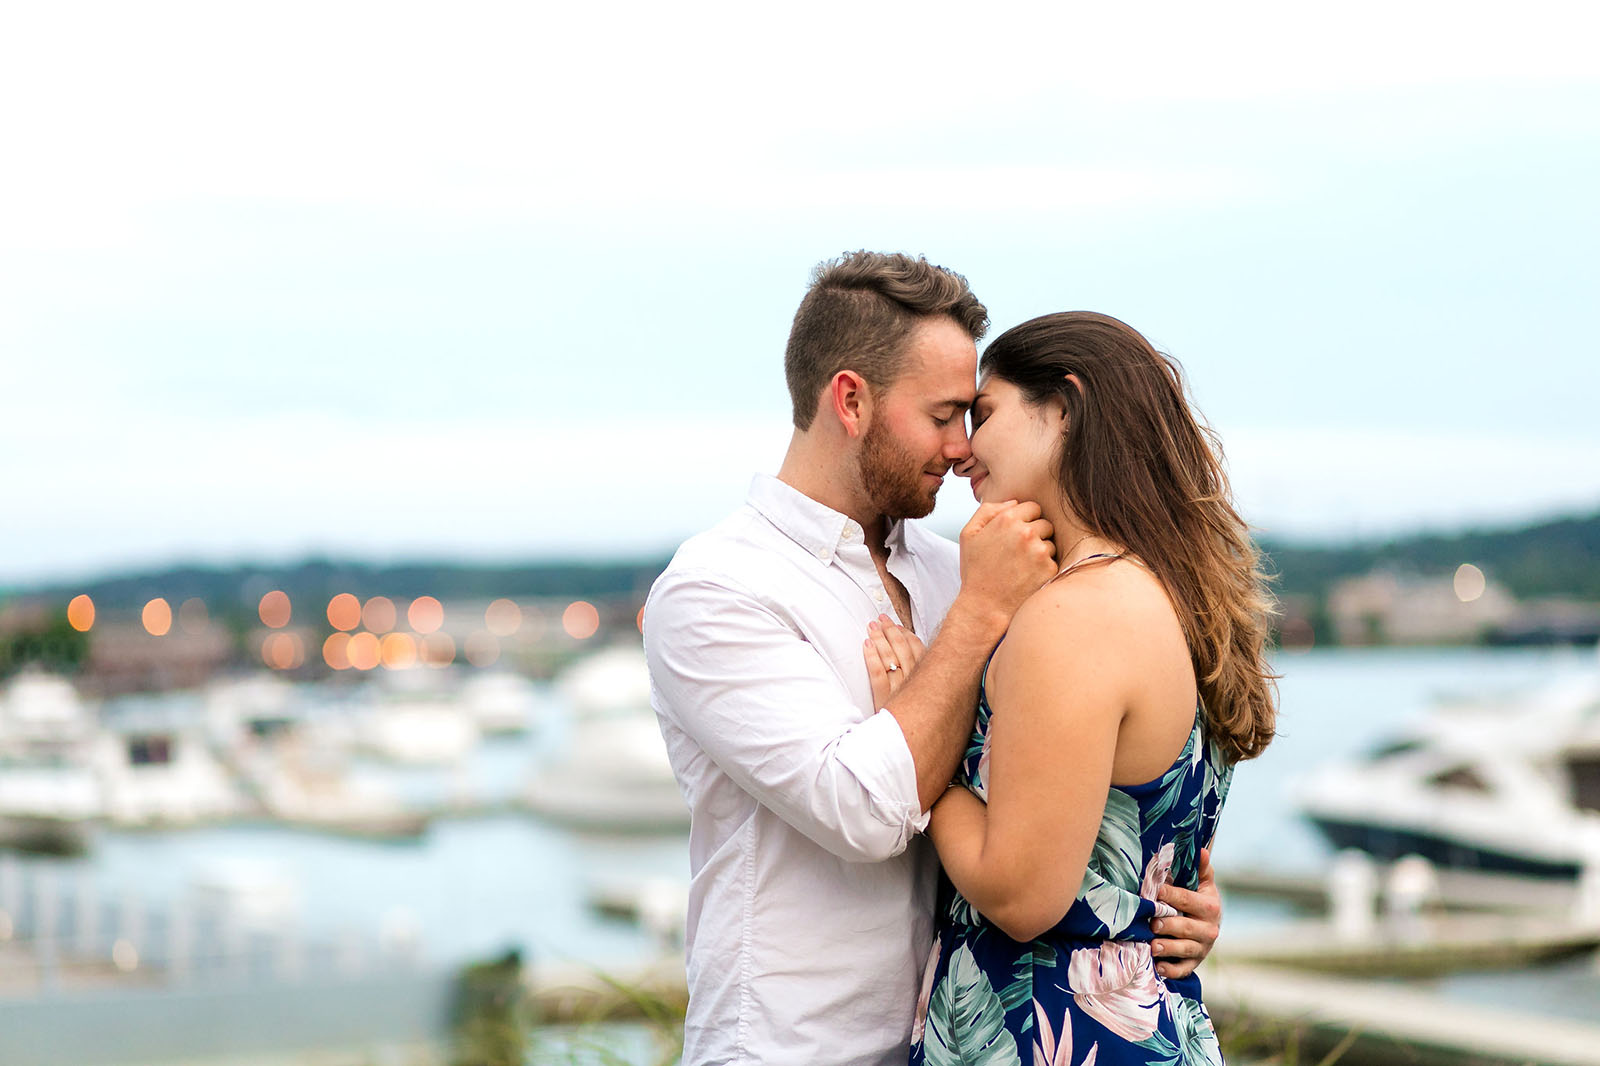 Couple kissing at engagement session, photography pricing